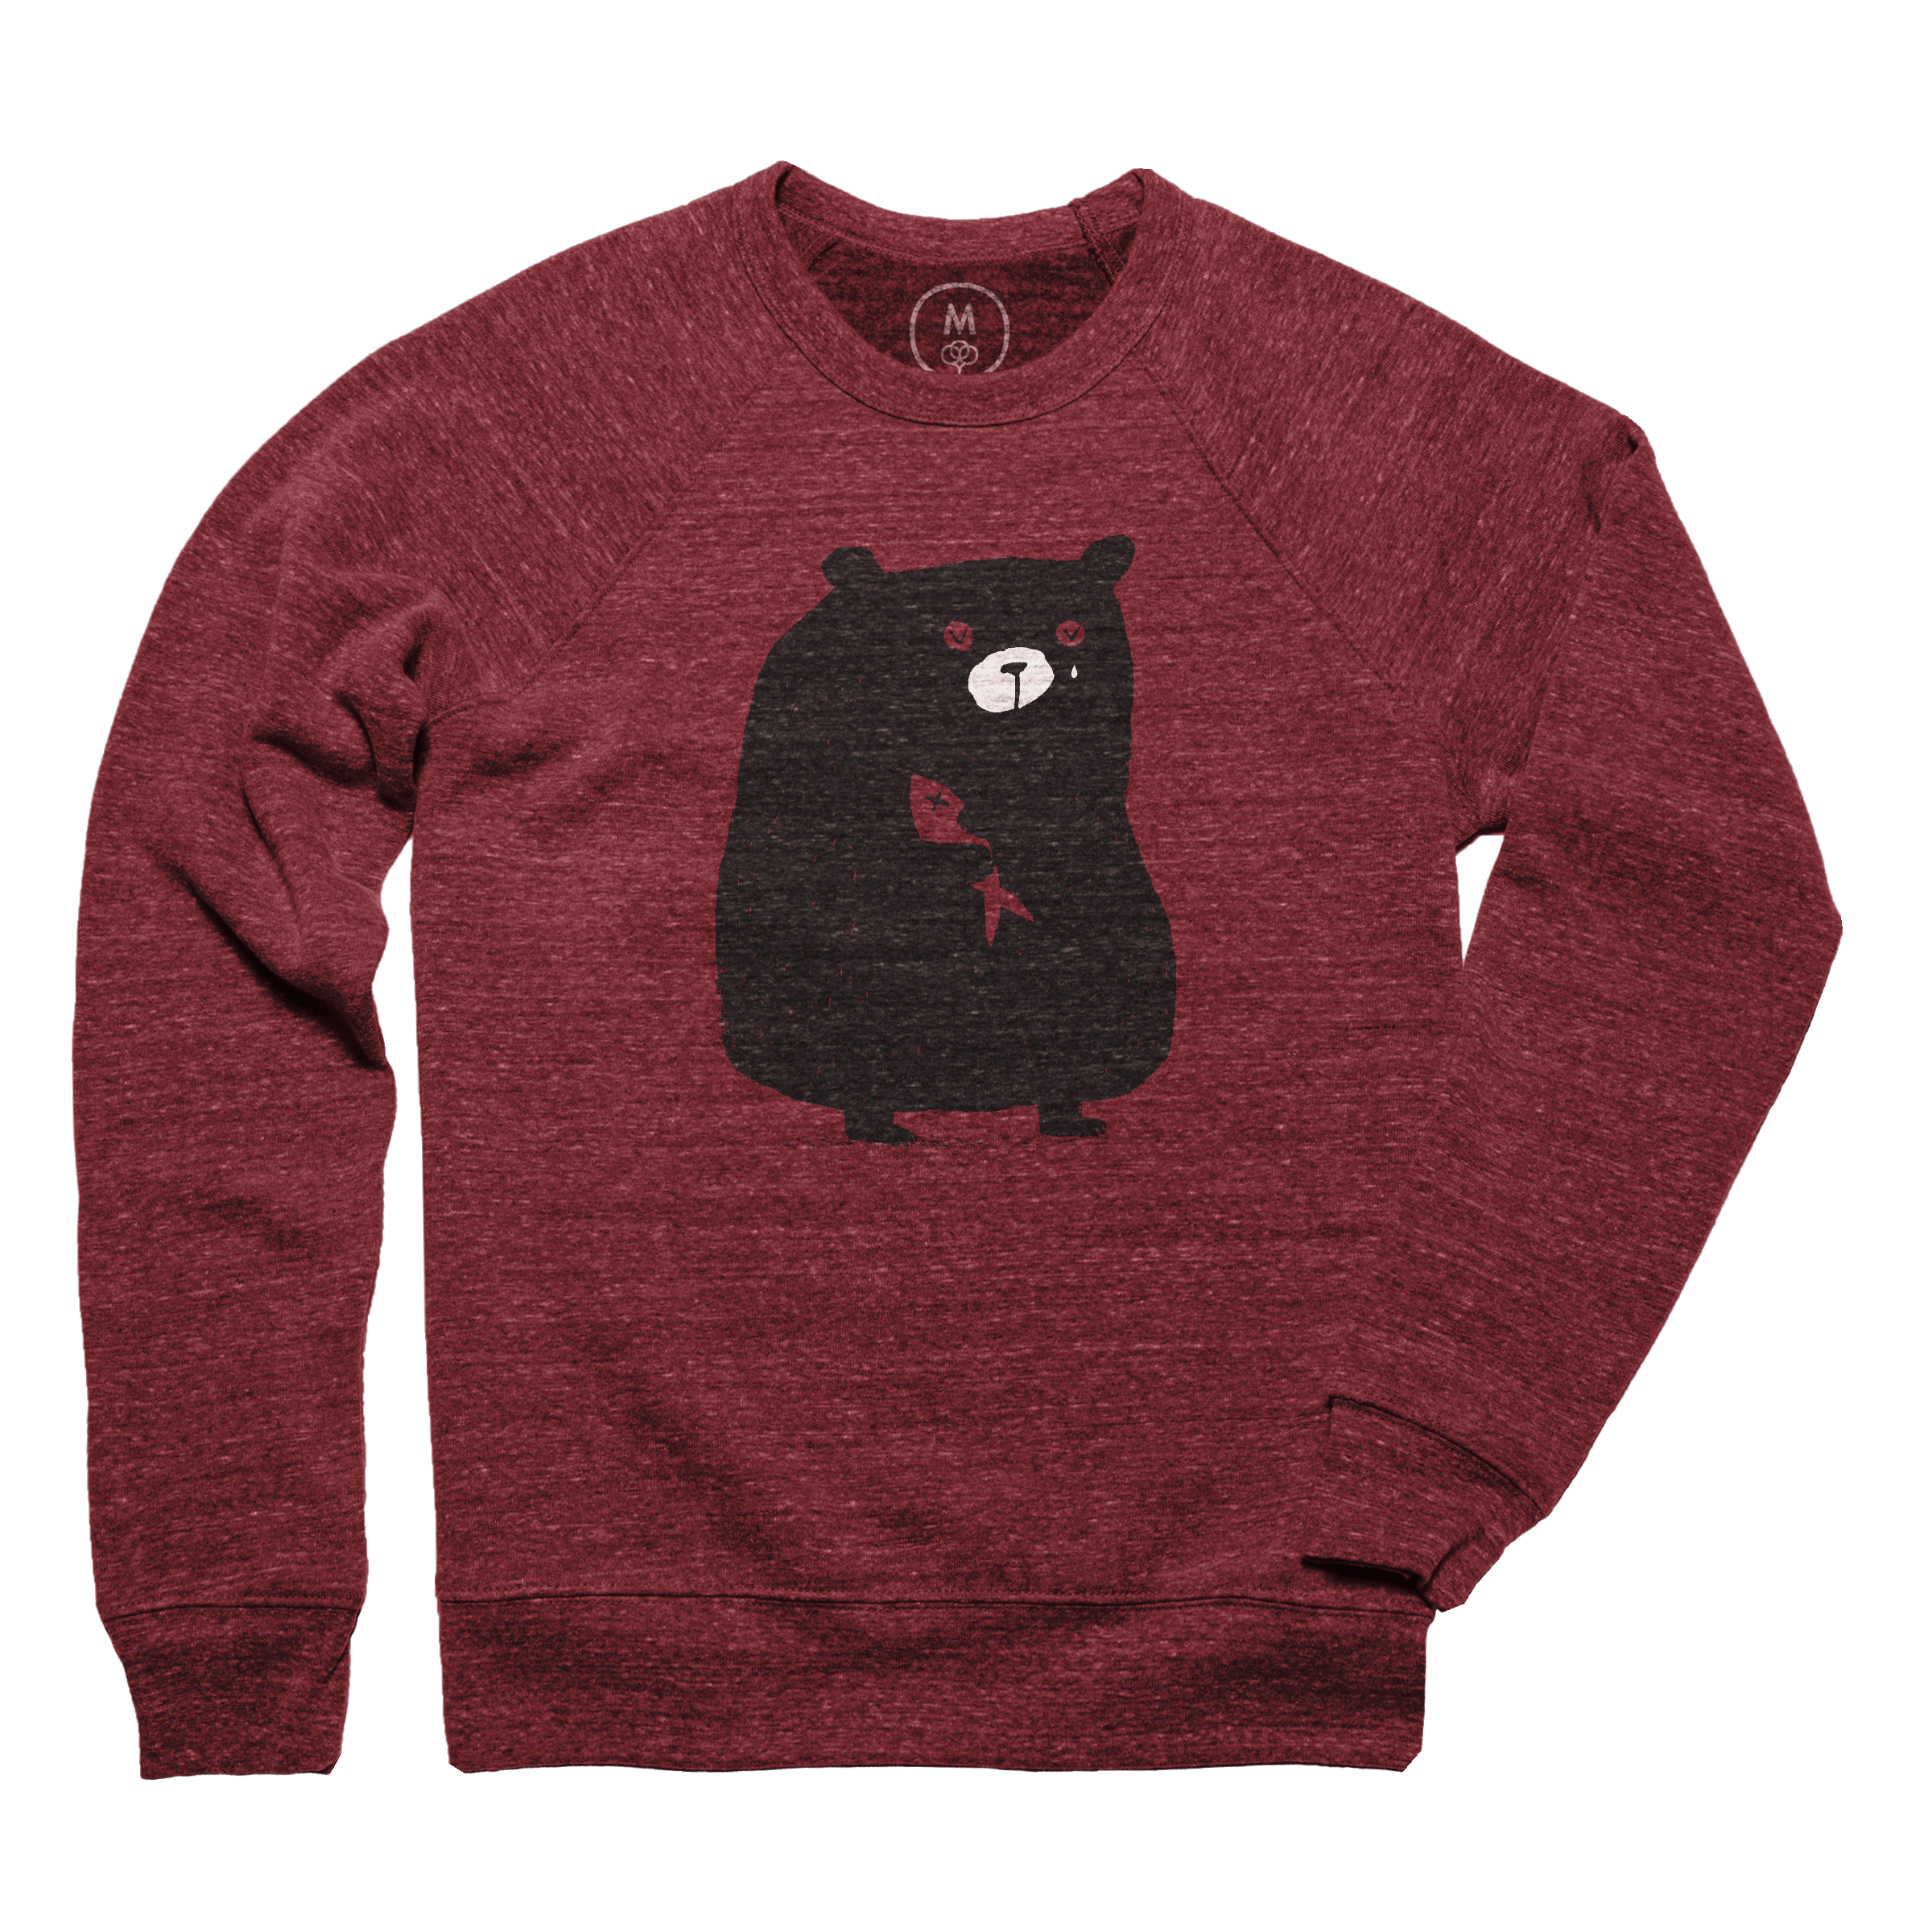 I'm Beary Sorry Pullover Crewneck